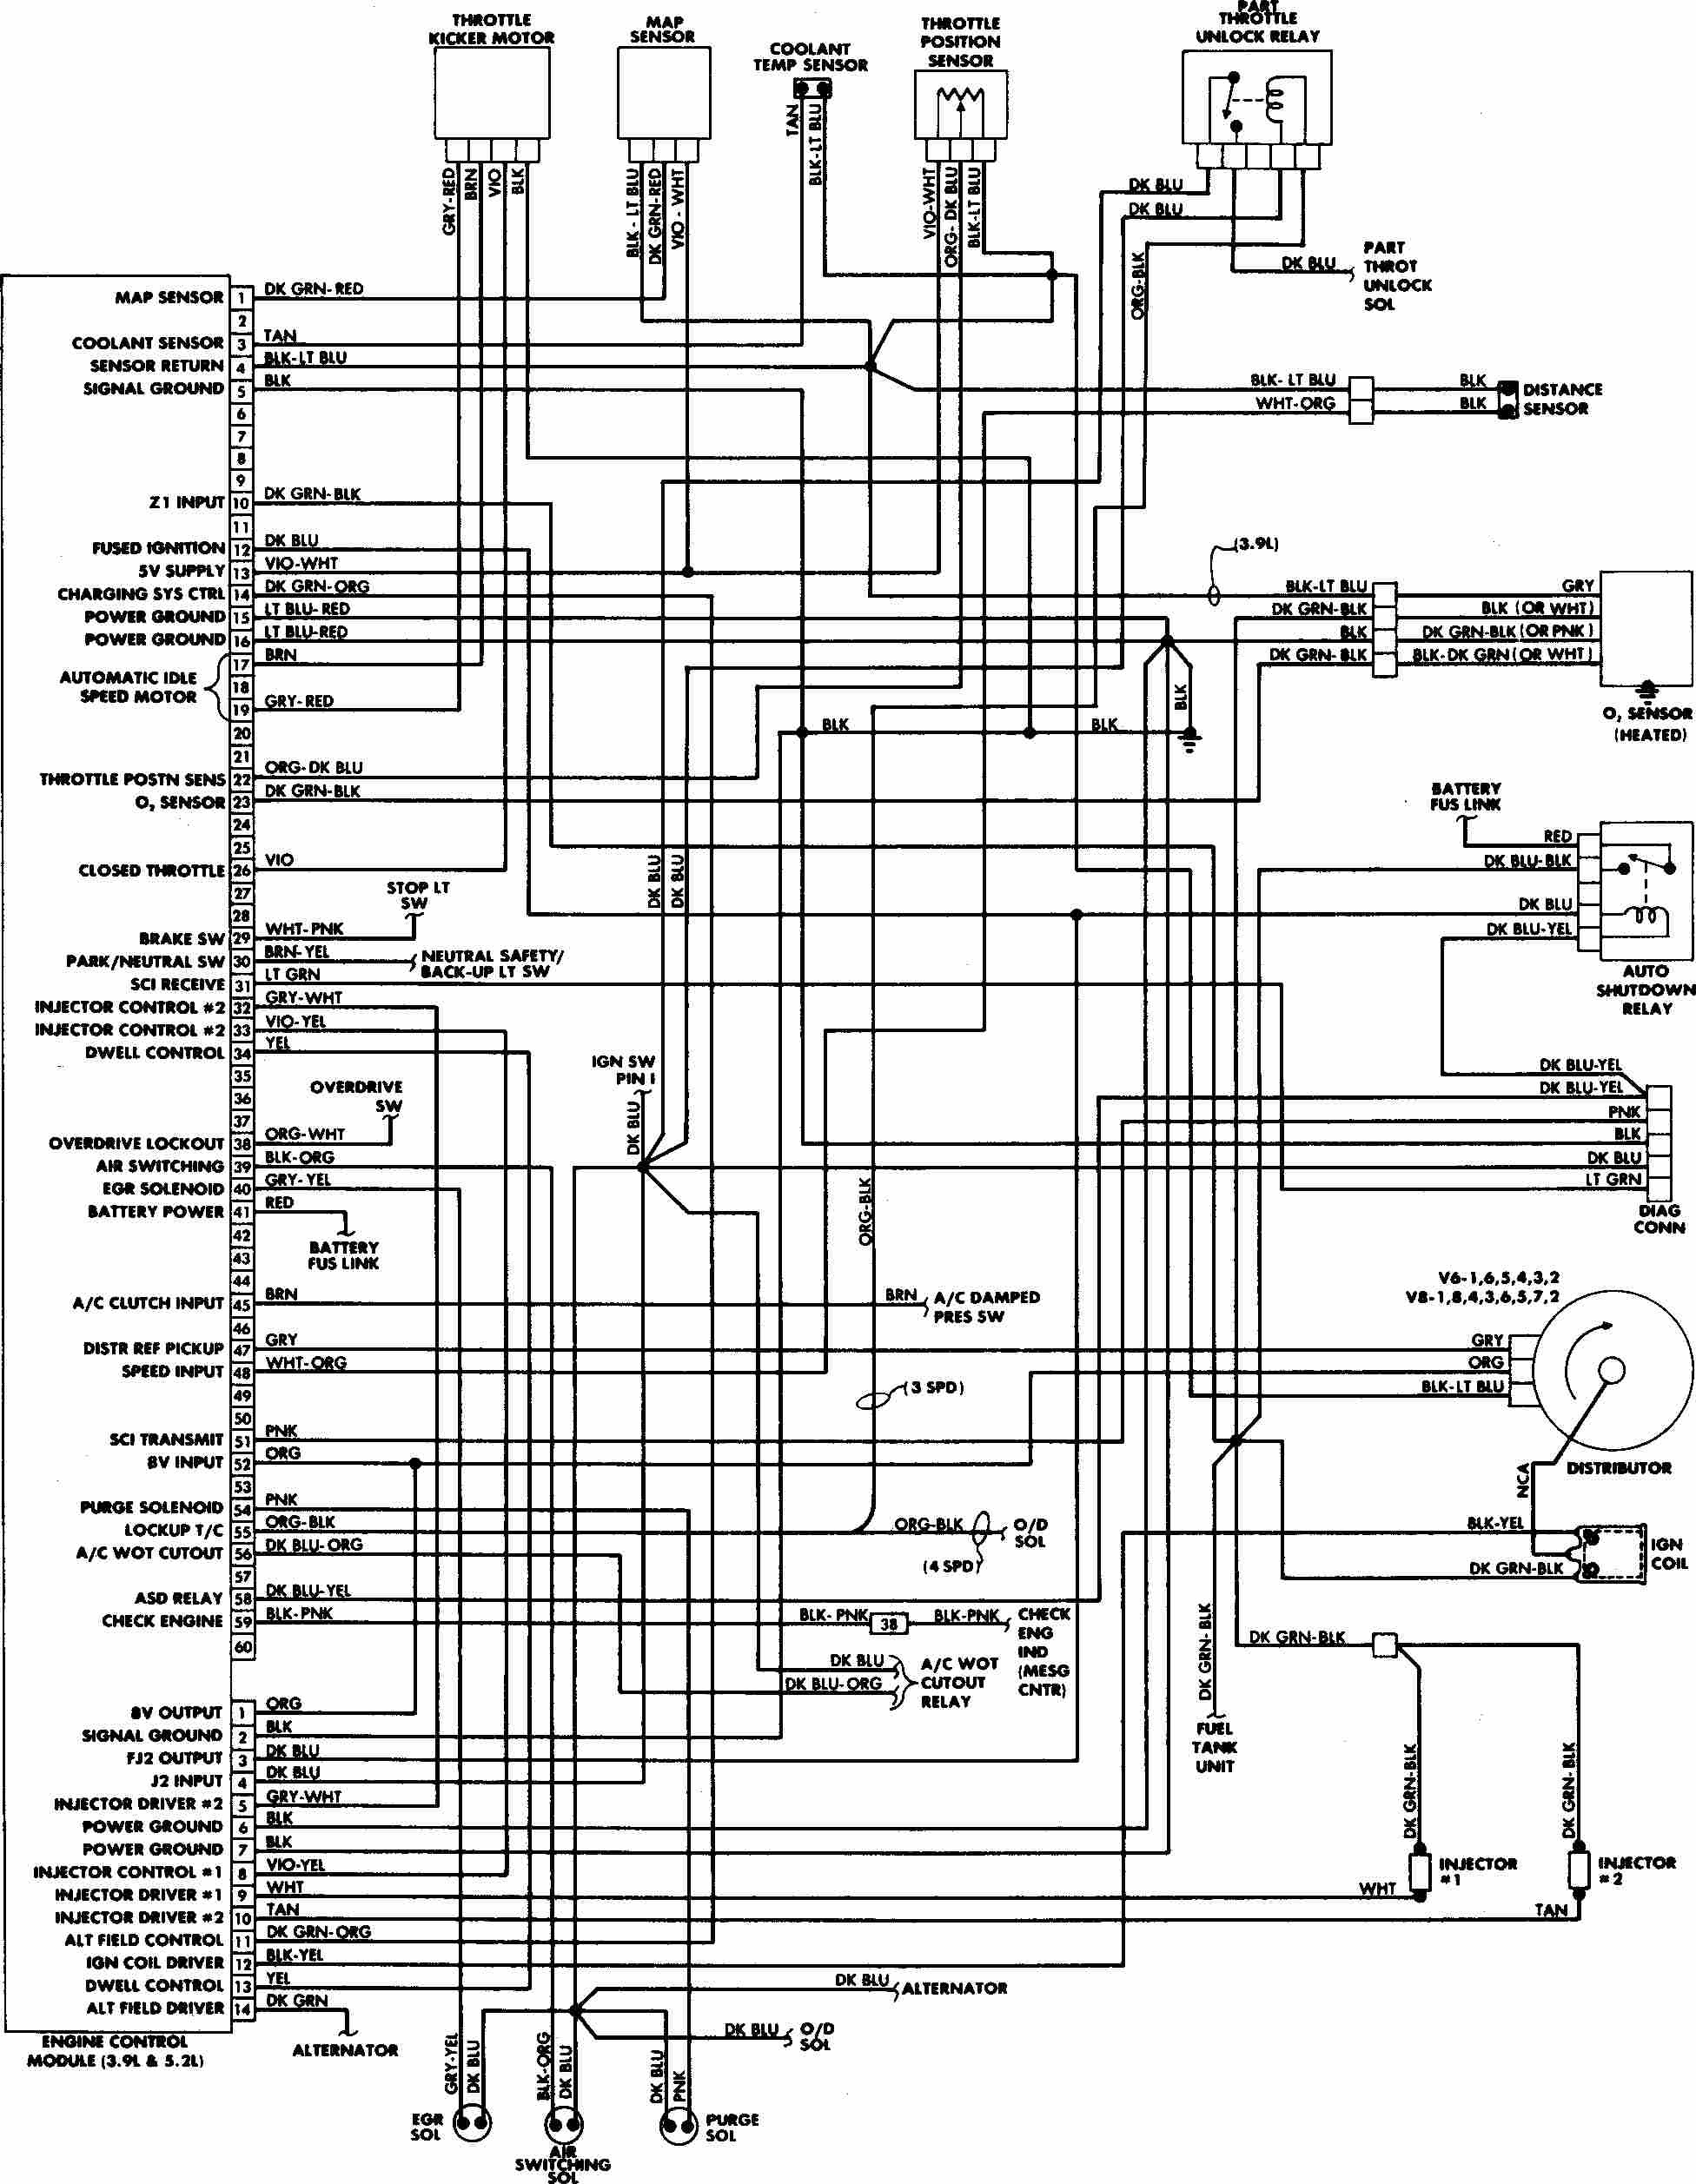 Vw T5 Electric Window Wiring Diagram